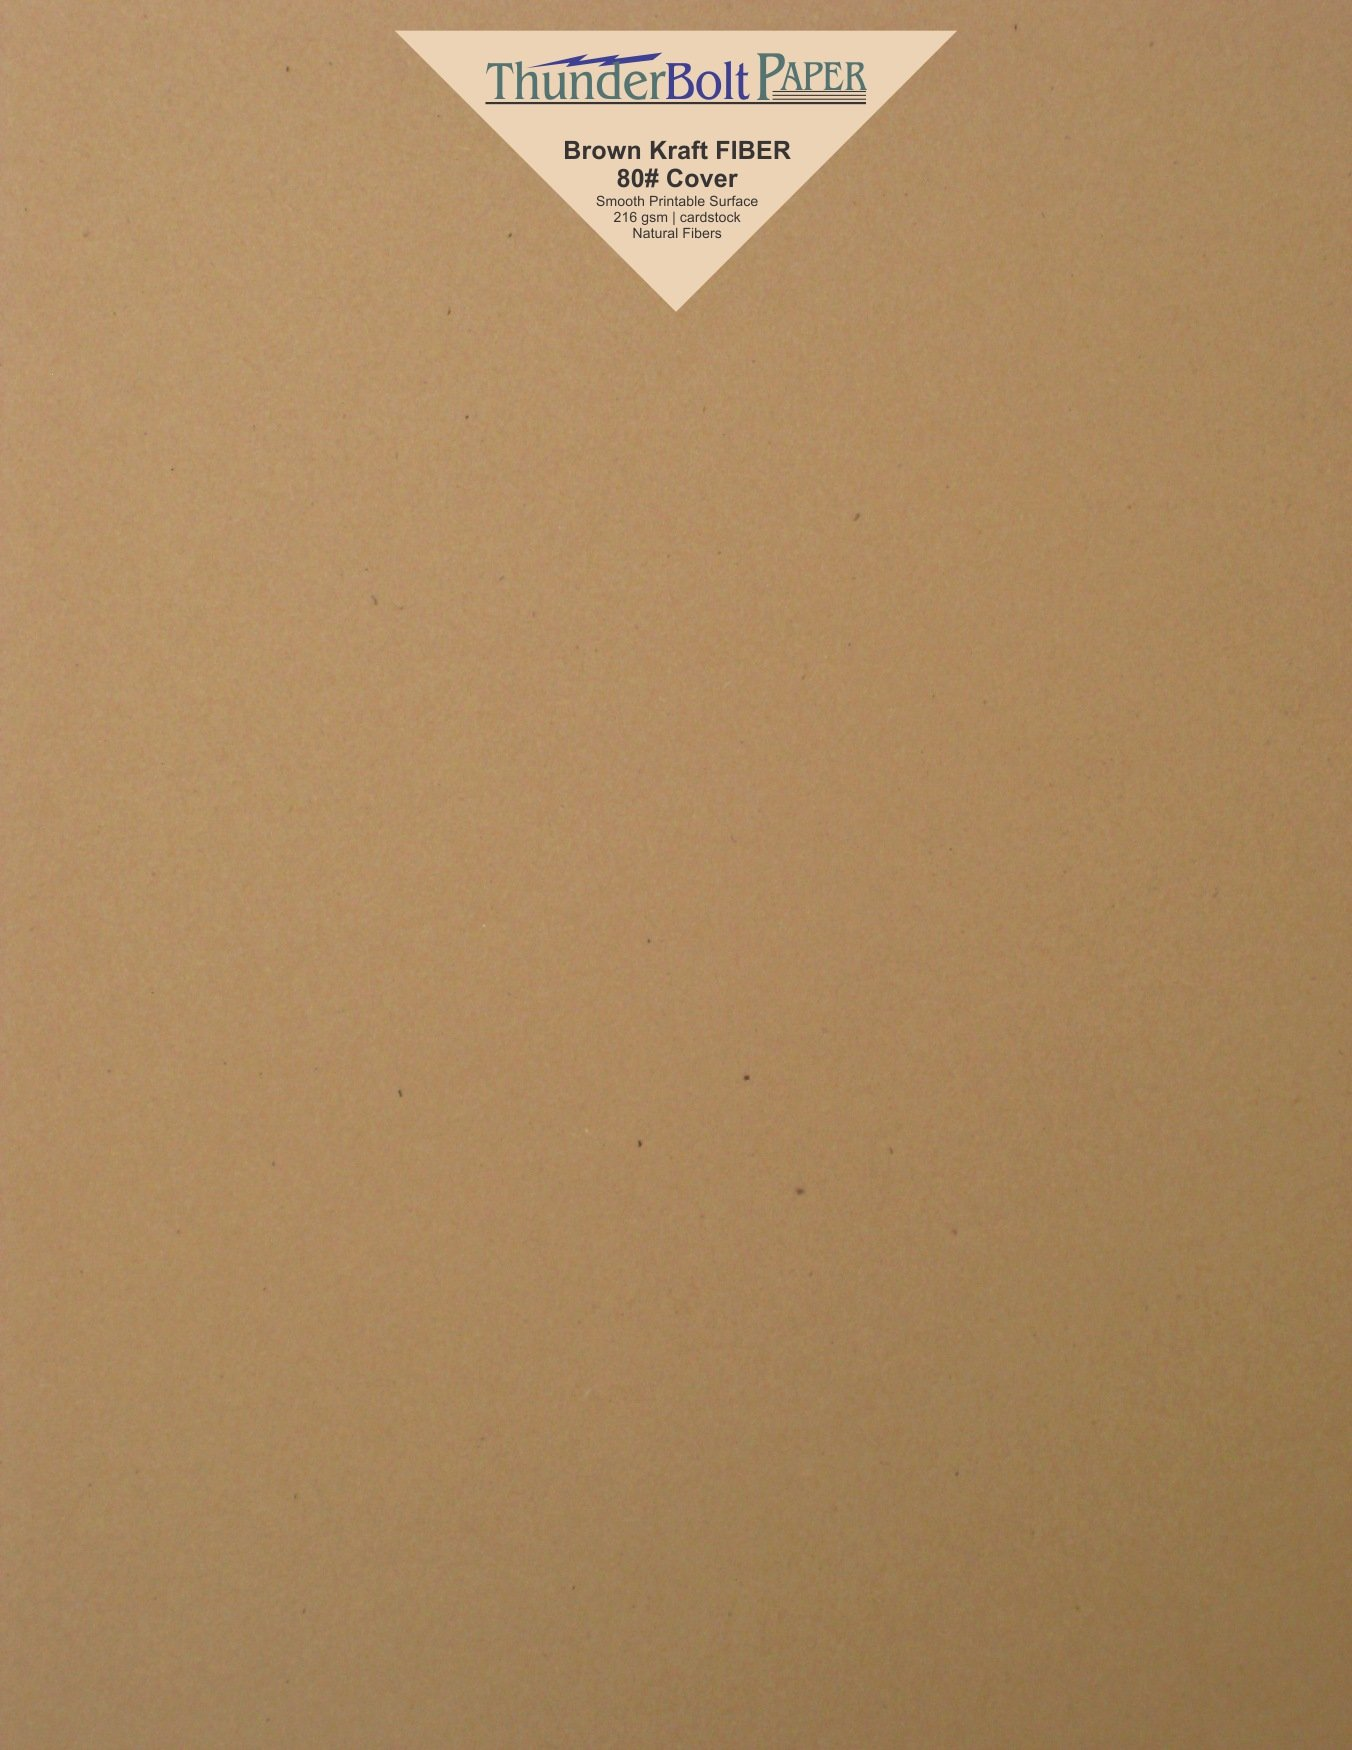 50 Brown Kraft Fiber 80# Cover Paper Sheets - 8.5'' X 11'' (8.5X11 Inches) Standard Letter|Flyer Size - Rich Earthy Color with Natural Fibers - 80lb/pound Cardstock - Smooth Finish